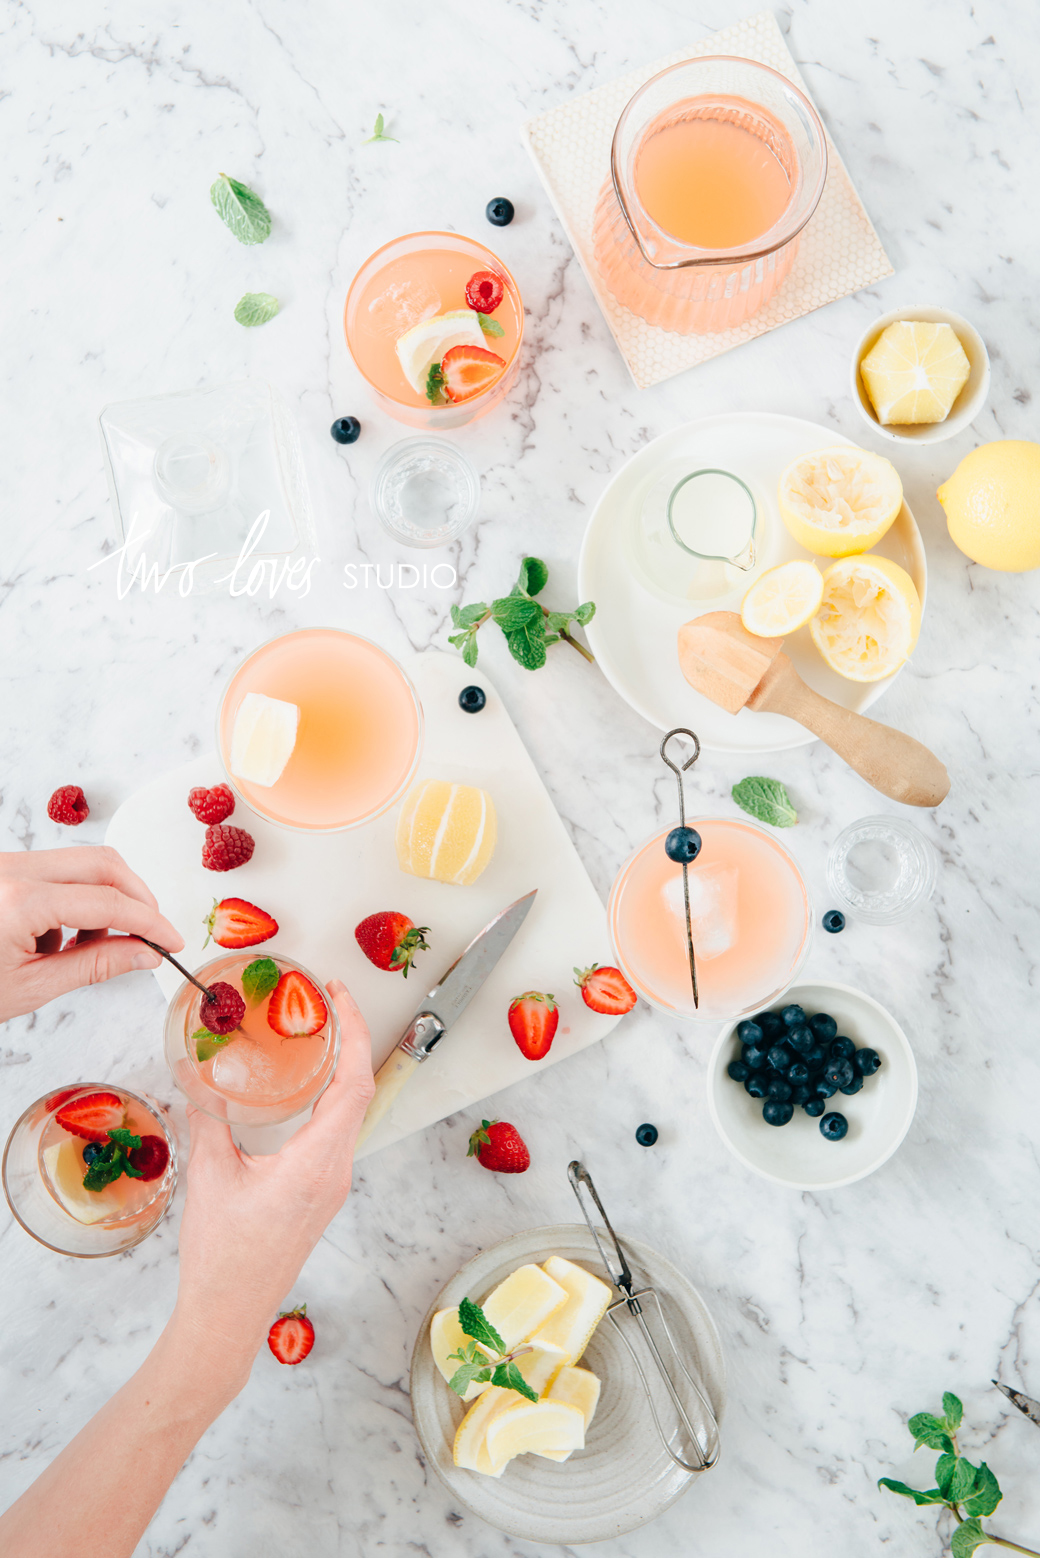 Create Dazzling Food Gathering Images with Photoshop Compositing | Take your food photography to the next level with Photoshop compositing and create impressive food gathering images, even with one pair of hands! Click through for the video tutorial.